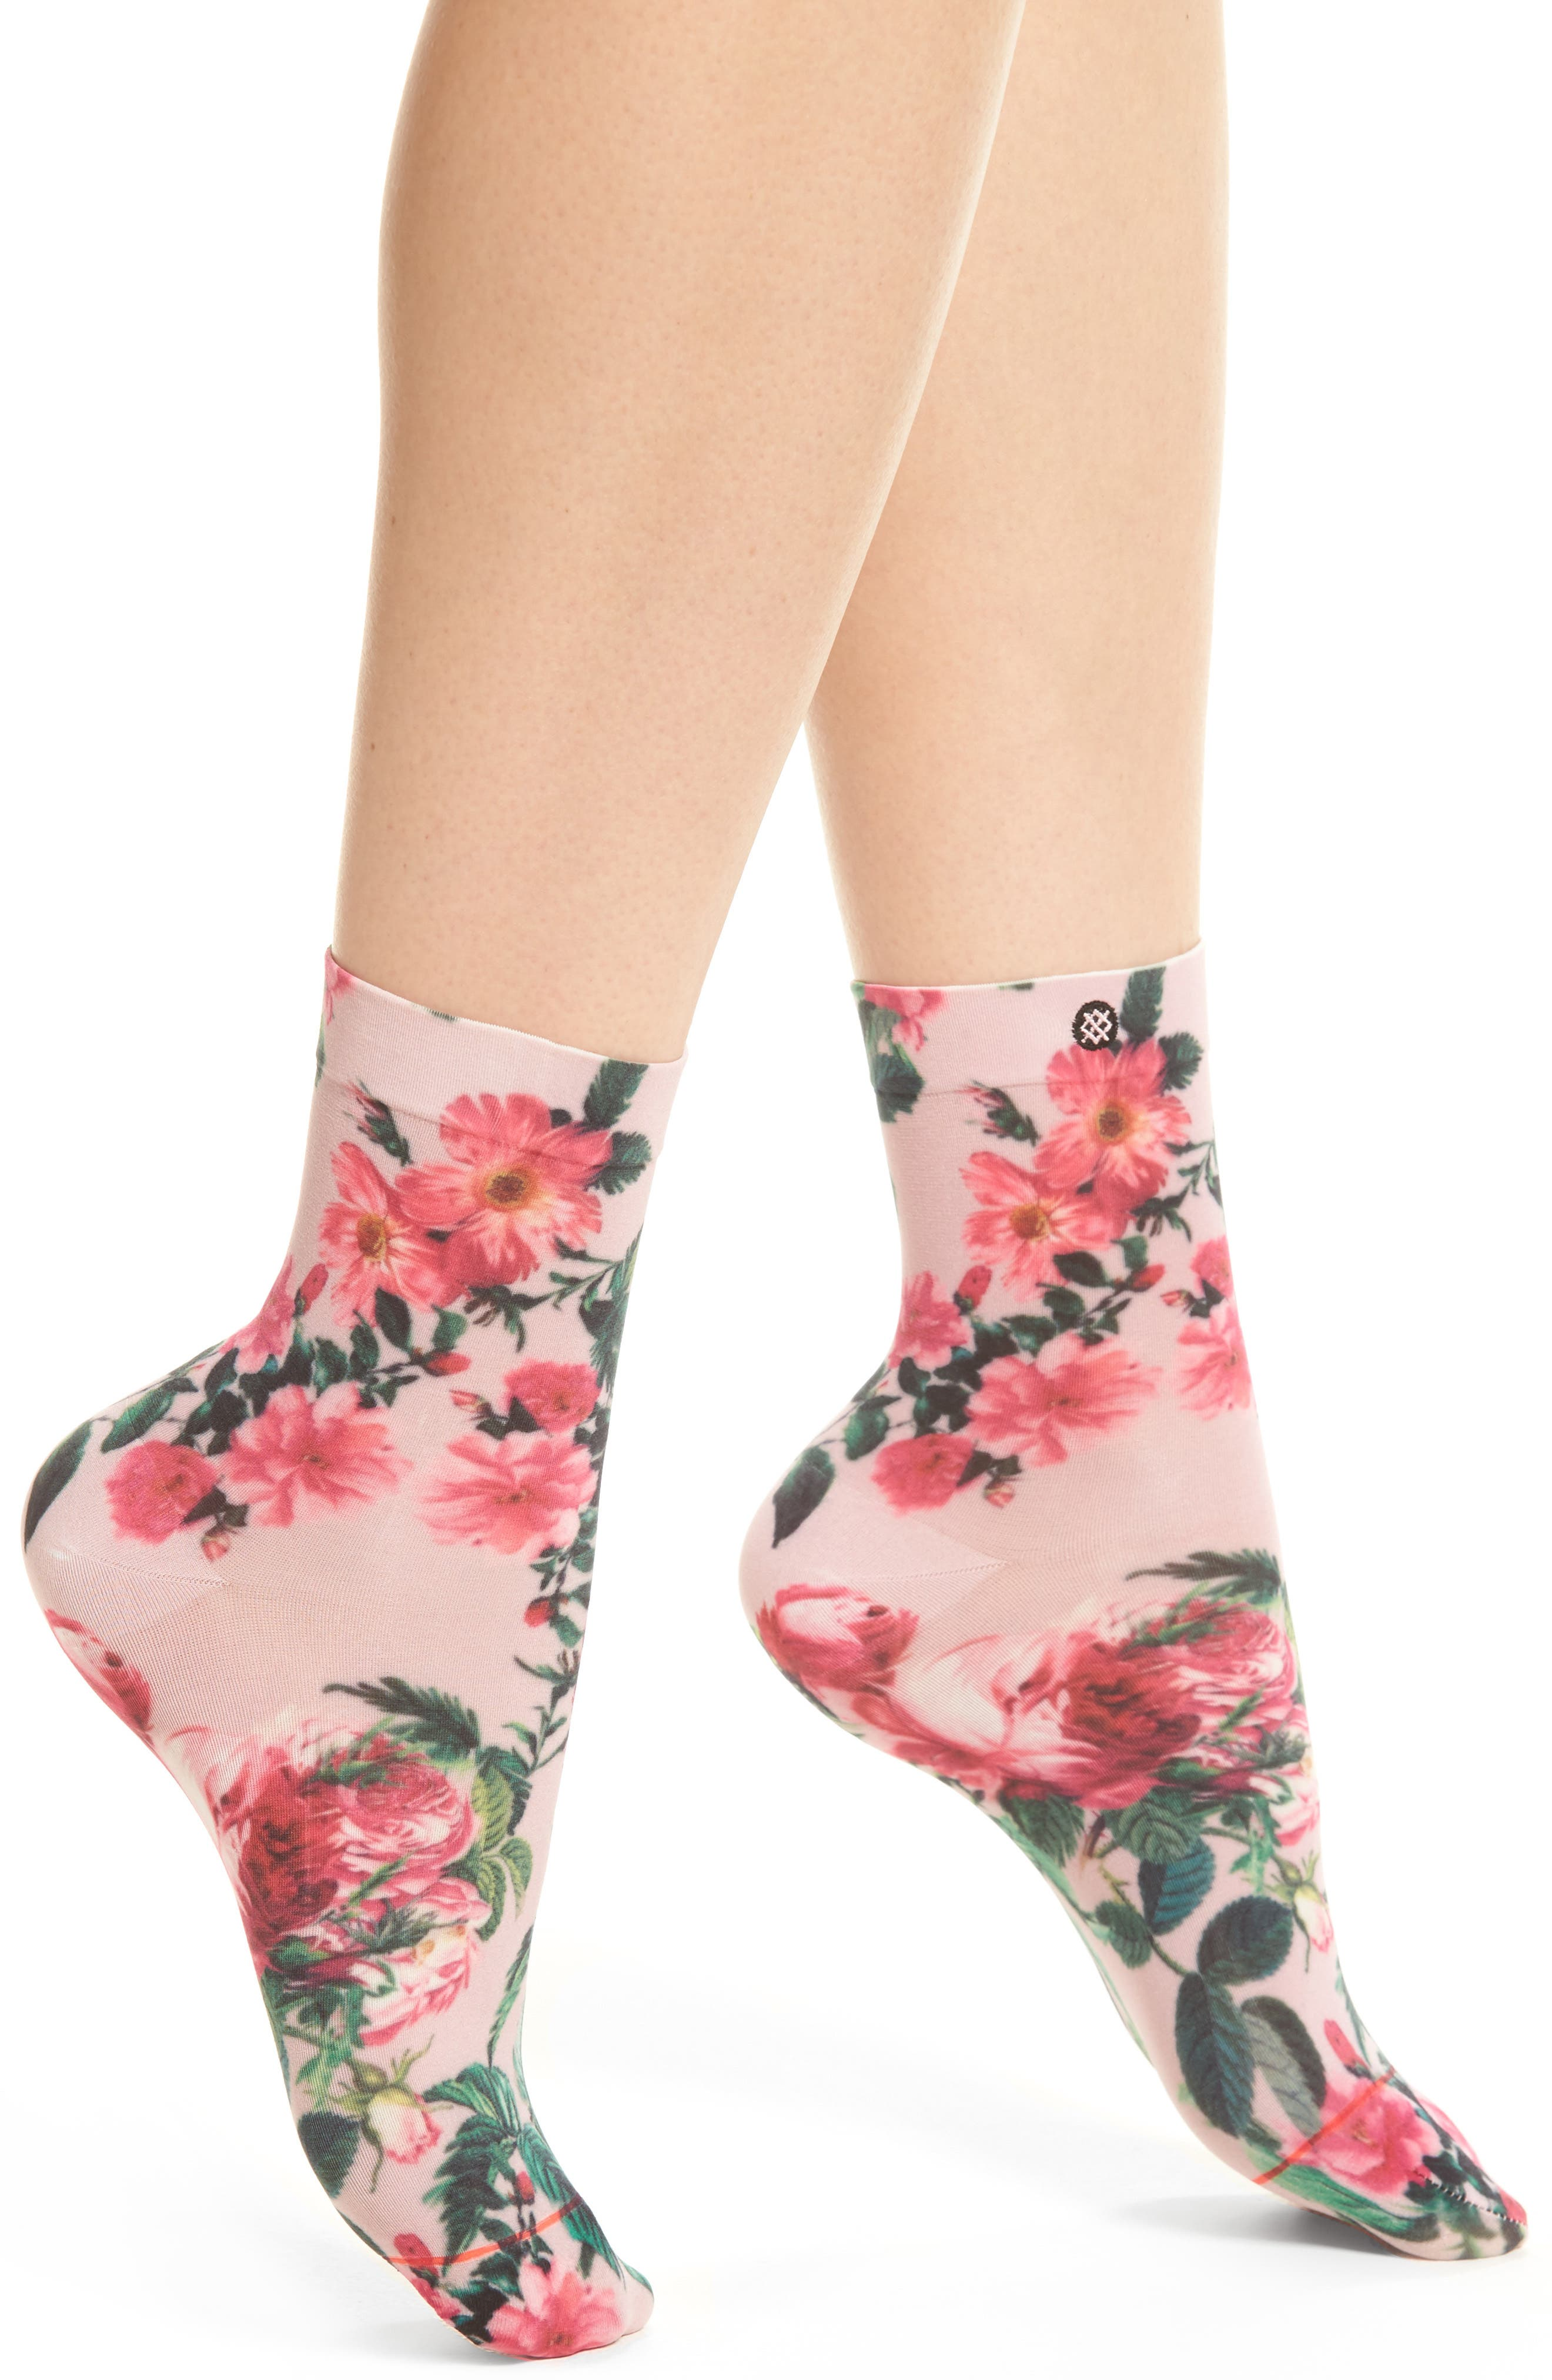 May Flowers Ankle Socks,                             Main thumbnail 1, color,                             Pink